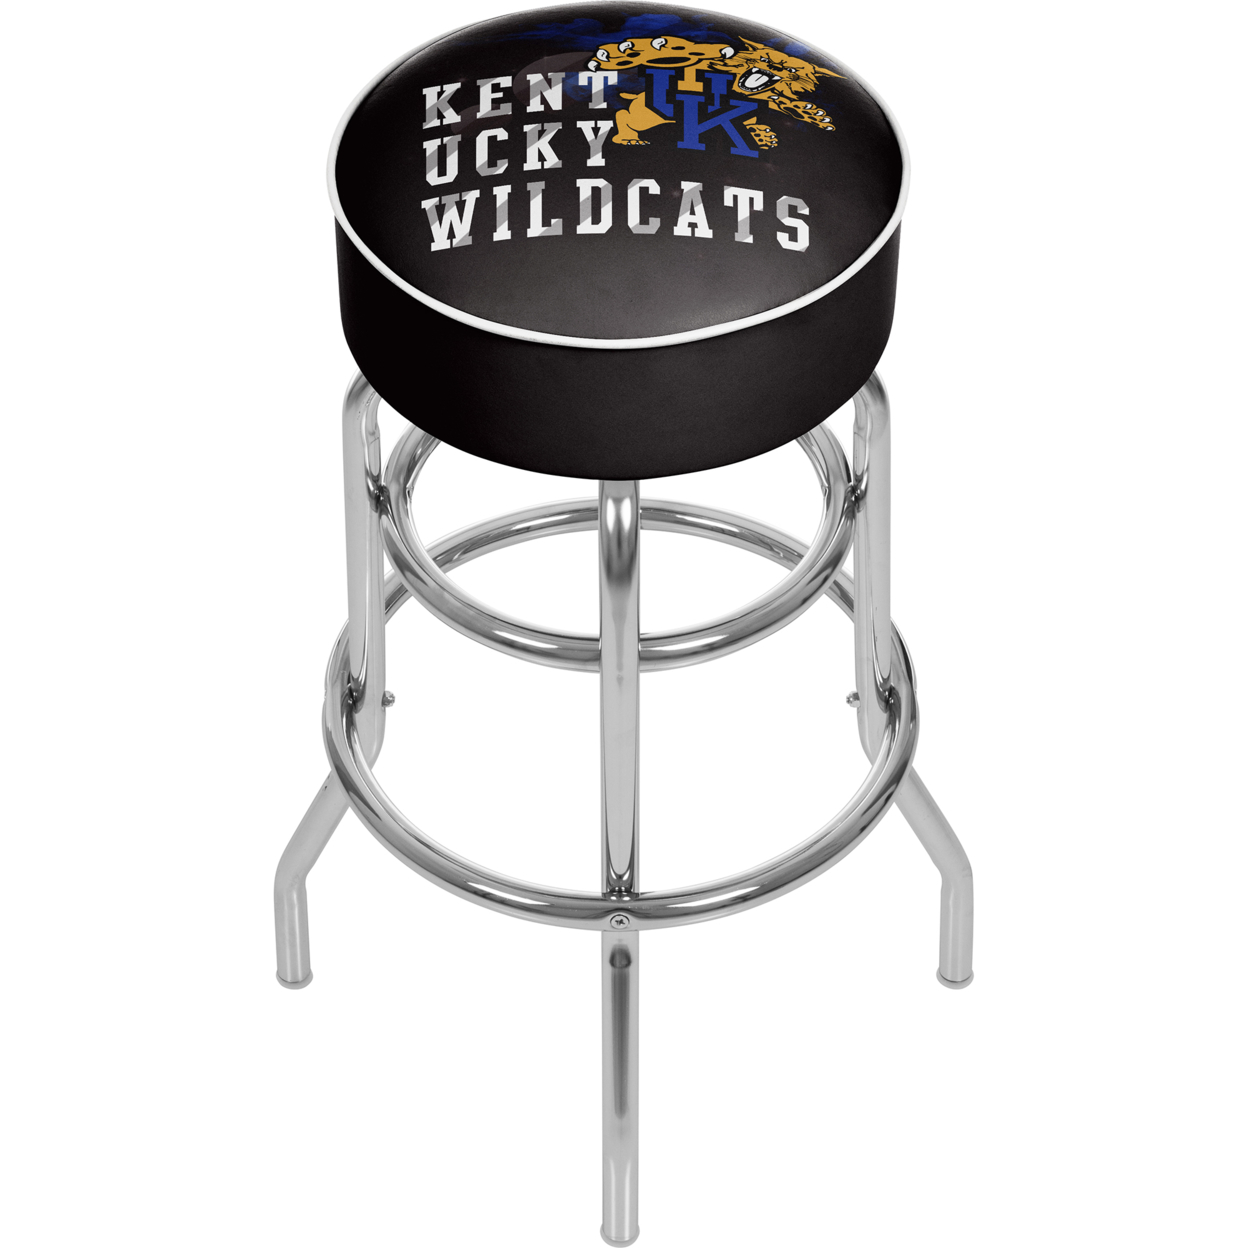 University of Kentucky Wildcats Smoke Padded Swivel Bar Stool 30 Inches High